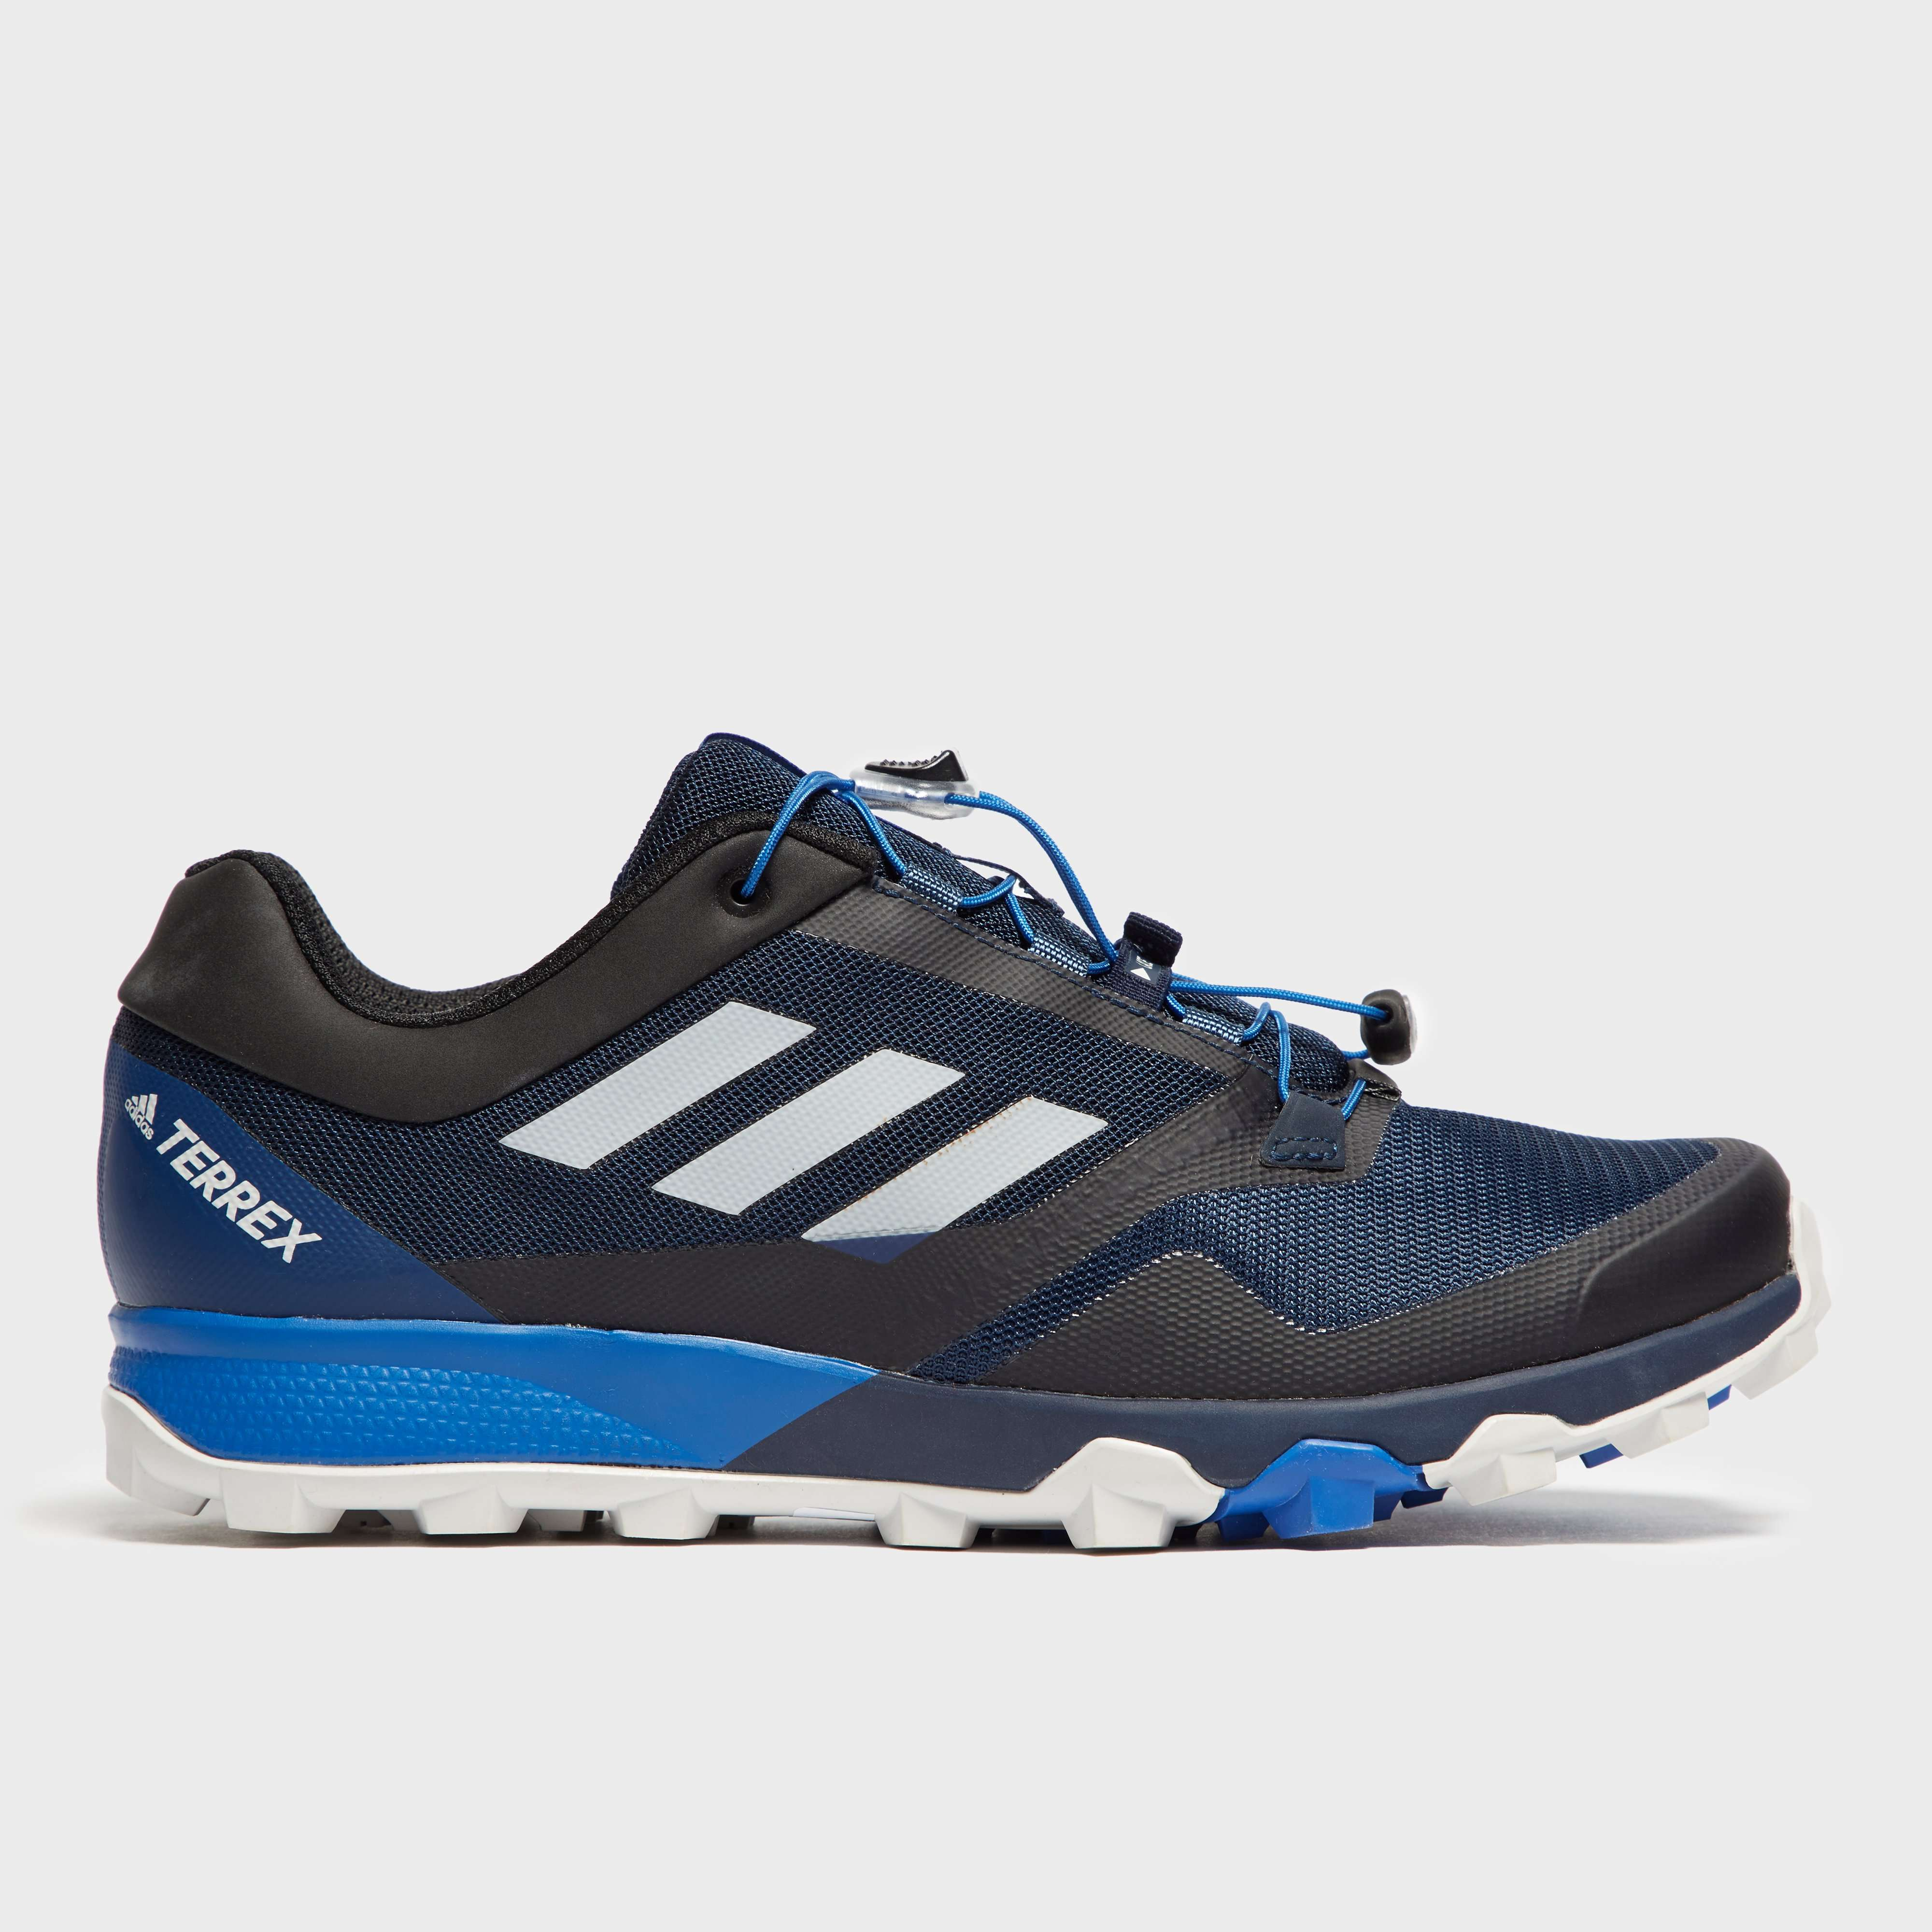 ADIDAS Men's Terrex Trailmaker